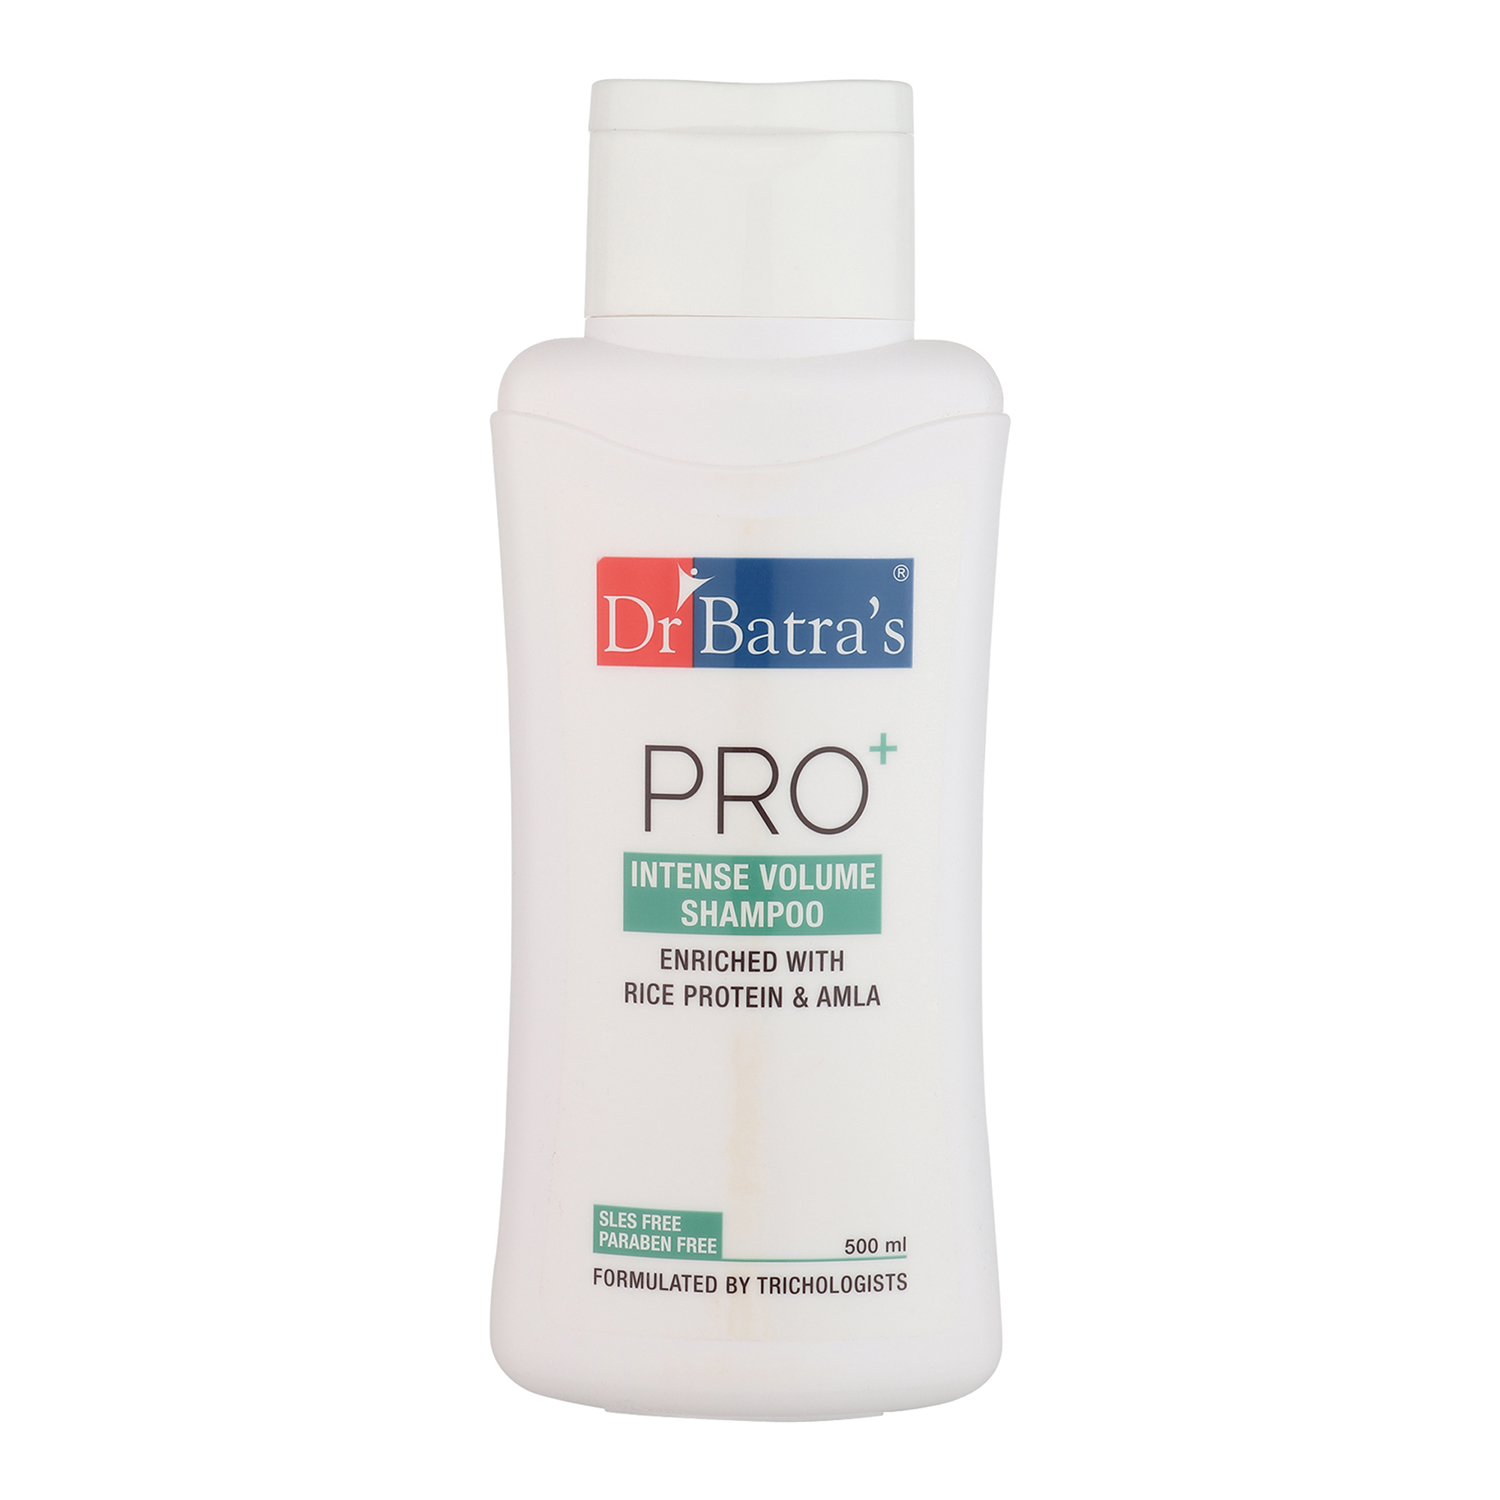 Dr Batra's | Dr Batra's Pro+ Intense Volume Shampoo Enriched With Rice protein & Amla - 500 ml